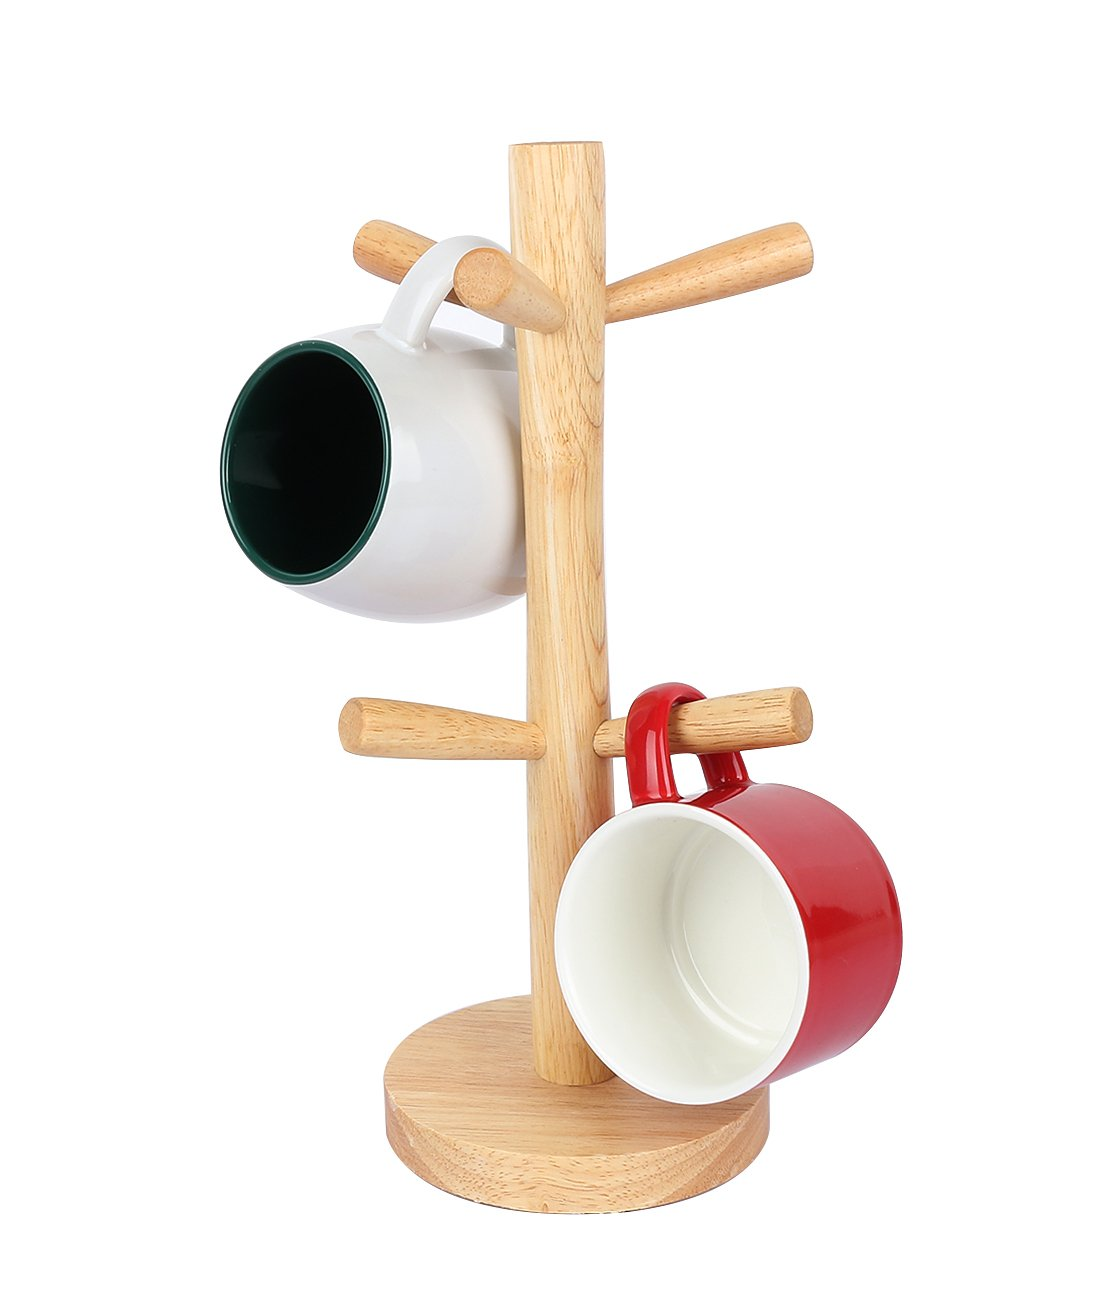 Fecihor Wood Mug Tree 6 Cup Holder for Kitchen Cups Organizer,Coffee Mug Drying,Creative Jewelry holder Storage Racks